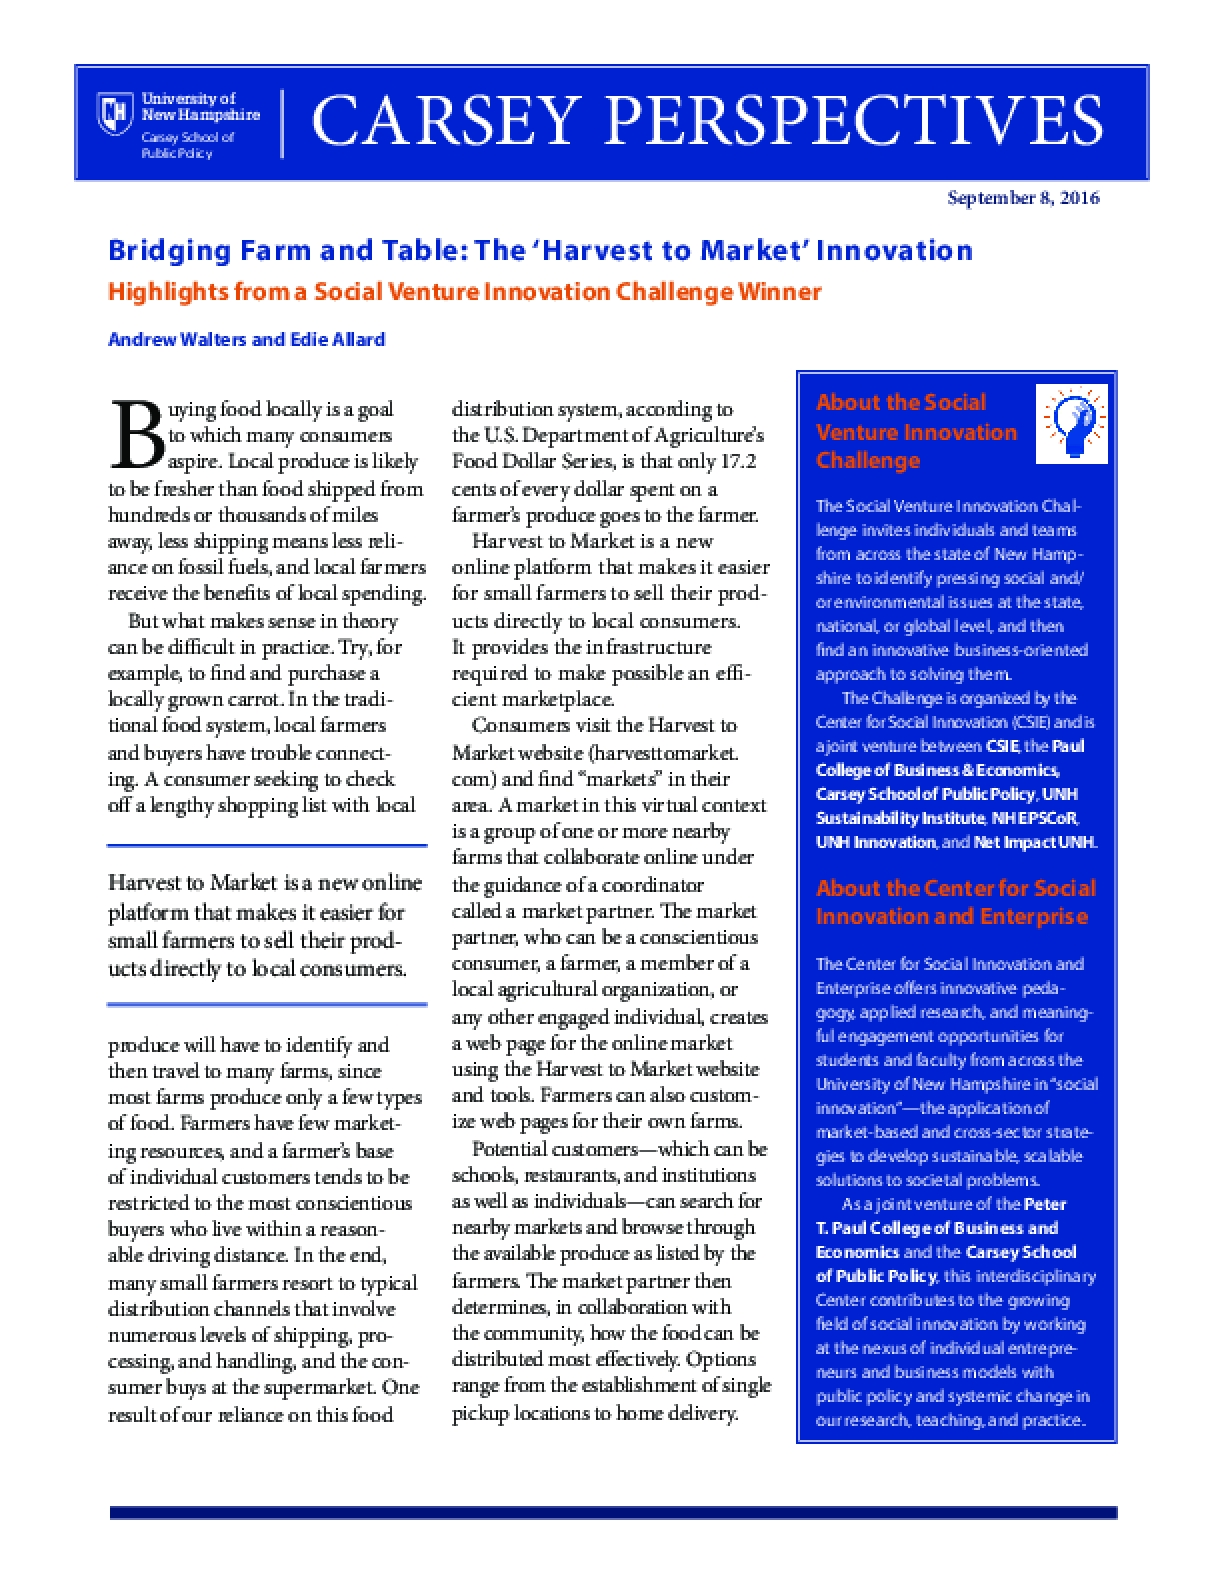 Carsey Perspectives: Bridging Farm and Table: The 'Harvest to Market' Innovation